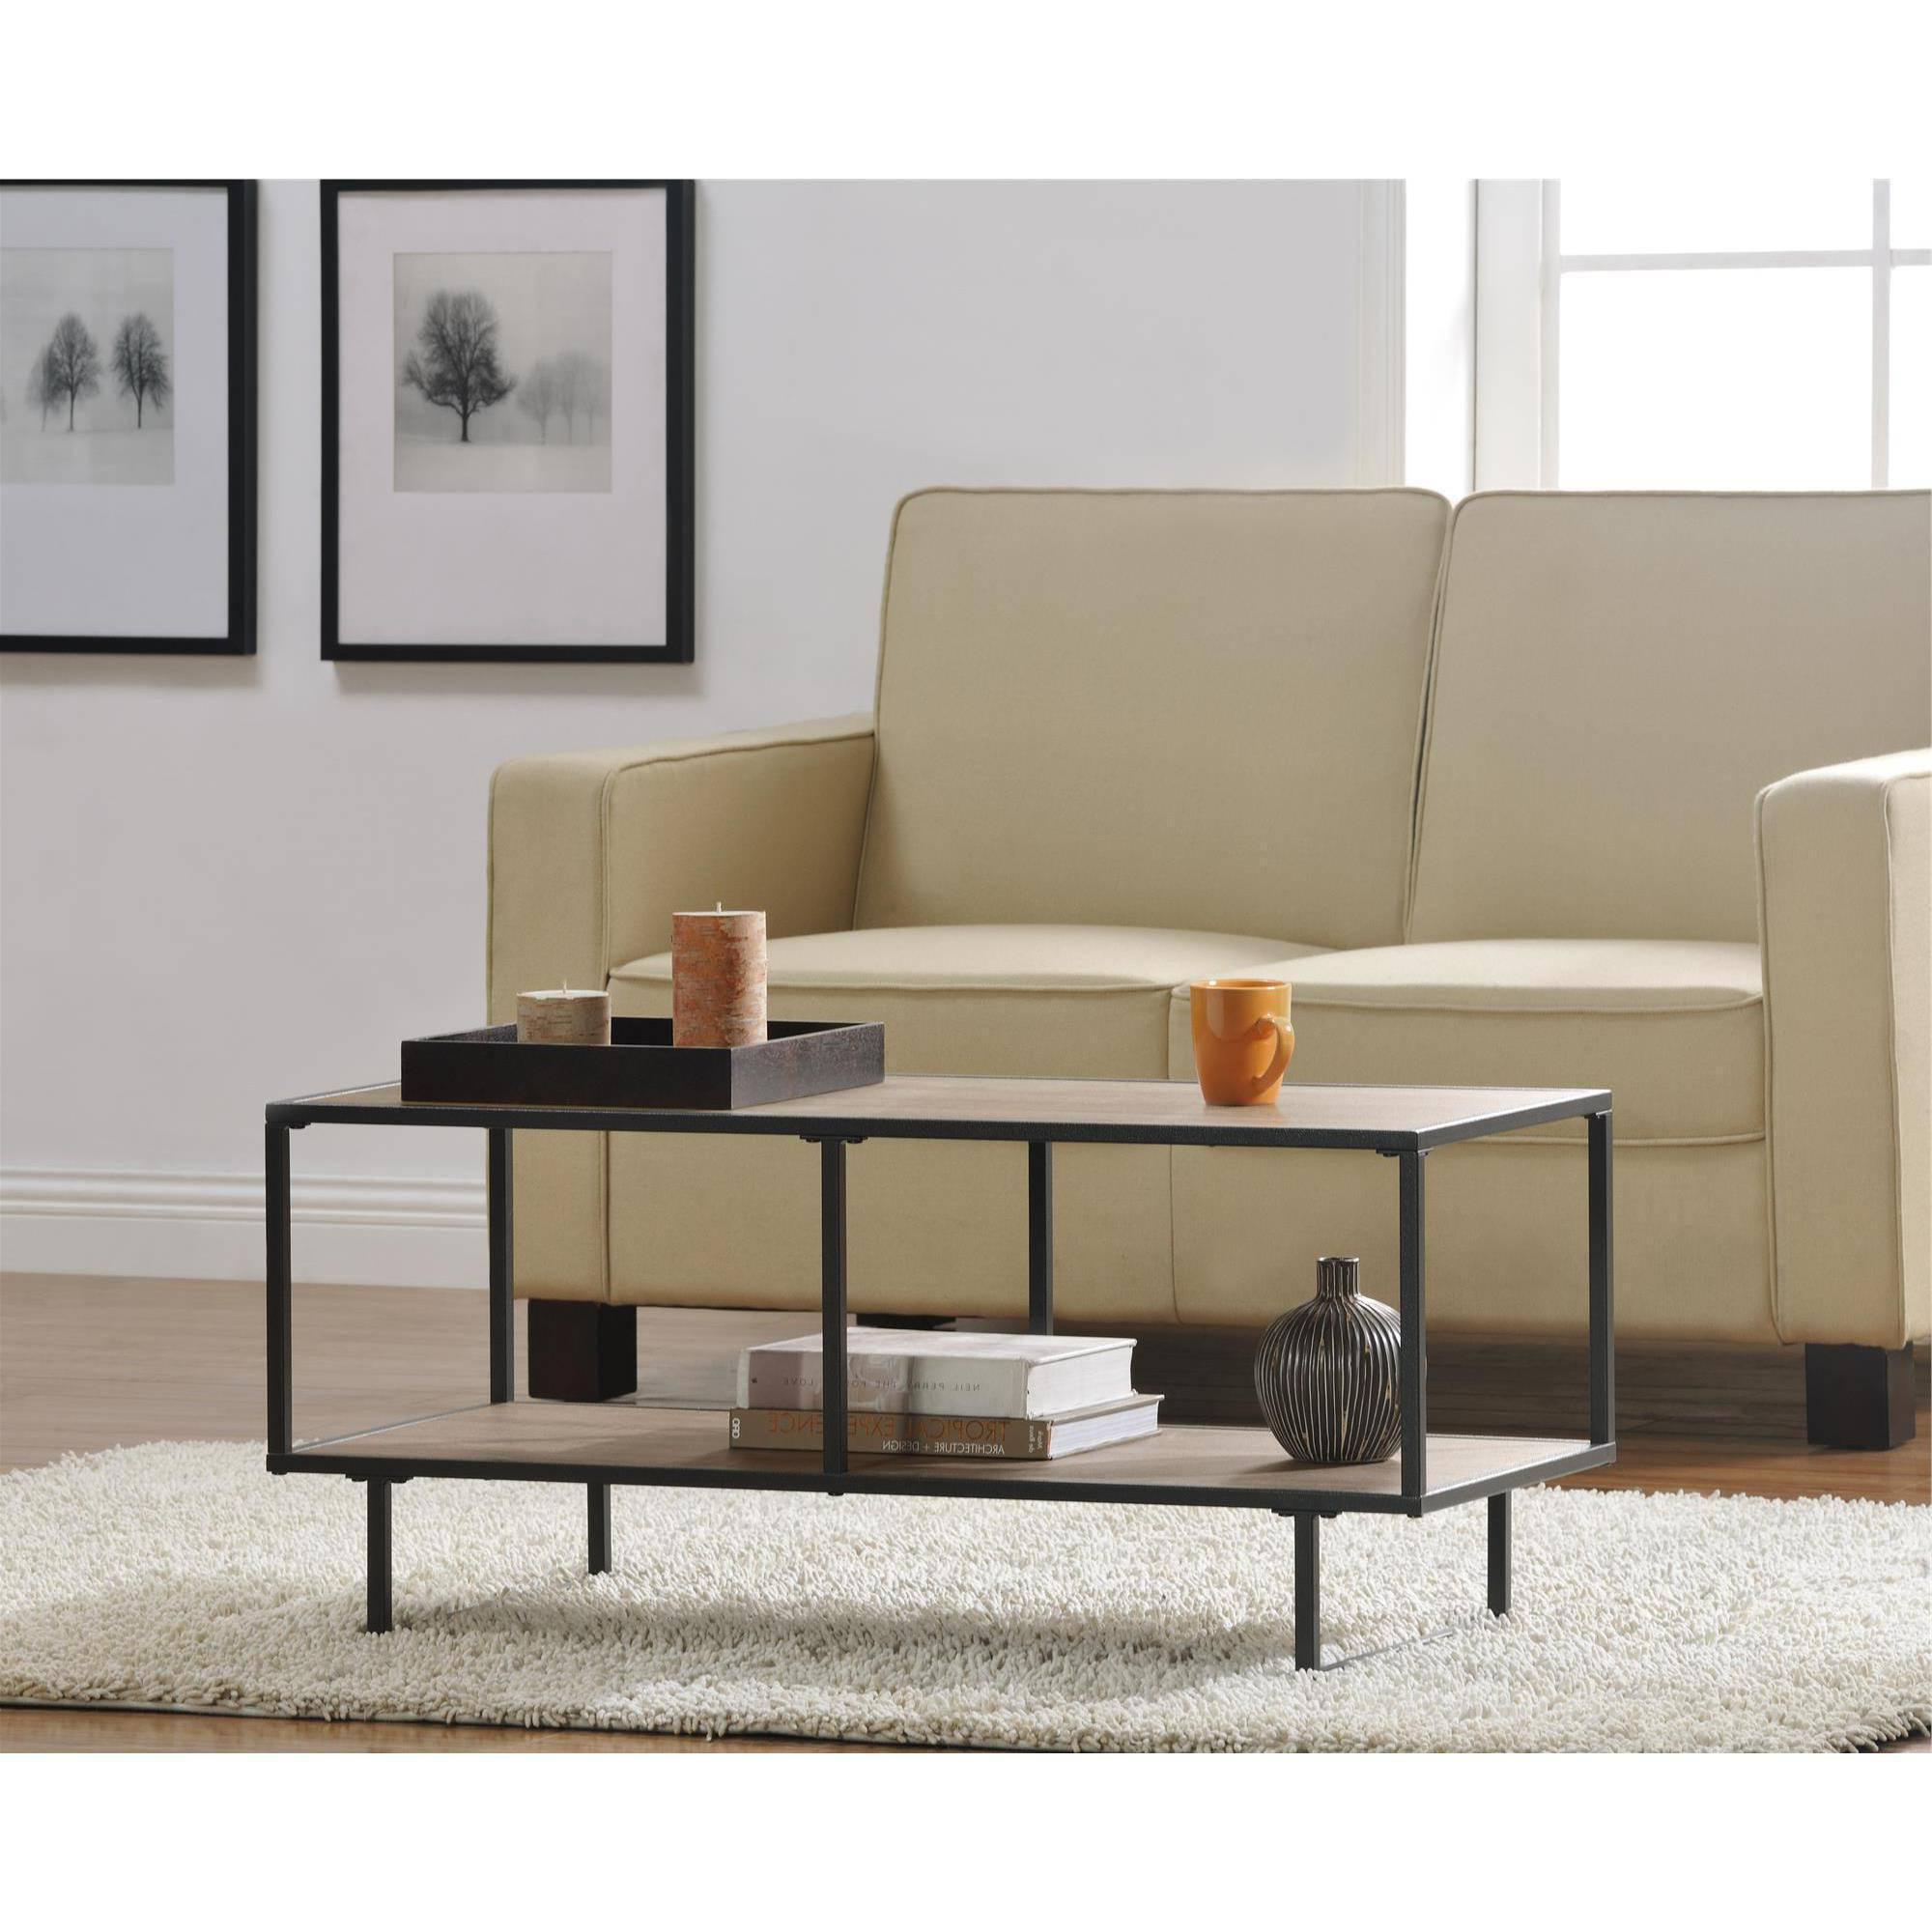 Newest Ameriwood Home Emmett Tv Stand/coffee Table – Walmart Within Coffee Tables And Tv Stands (Gallery 8 of 20)